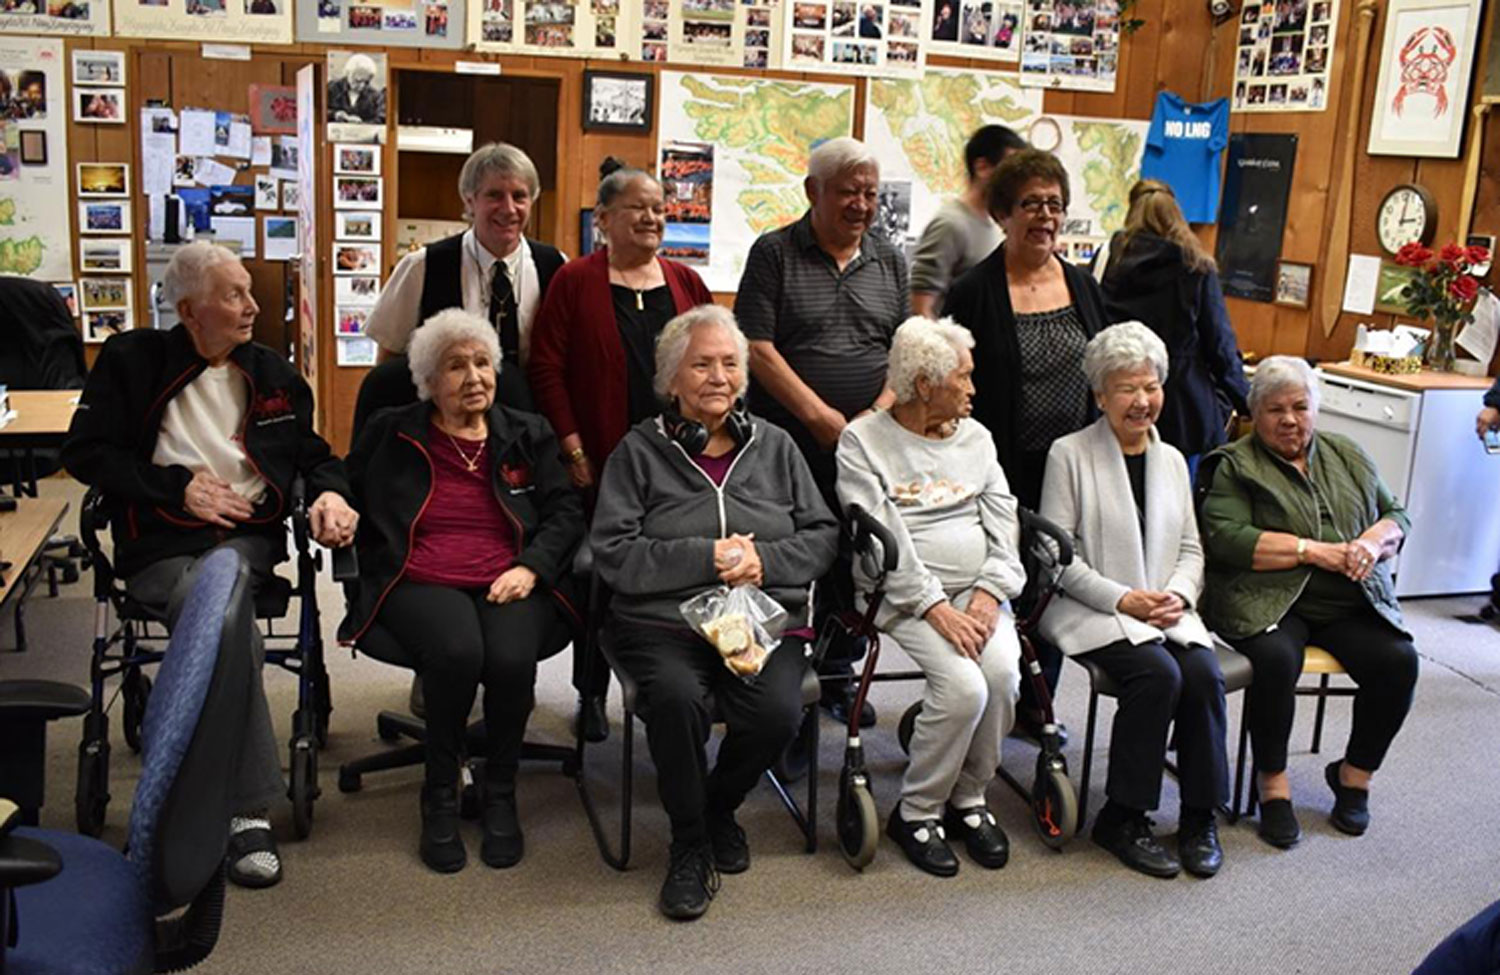 NINE HAIDA ELDERS RECEIVE VIU'S MOST PRESTIGIOUS AWARD FOR LANGUAGE AND CULTURE PRESERVATION